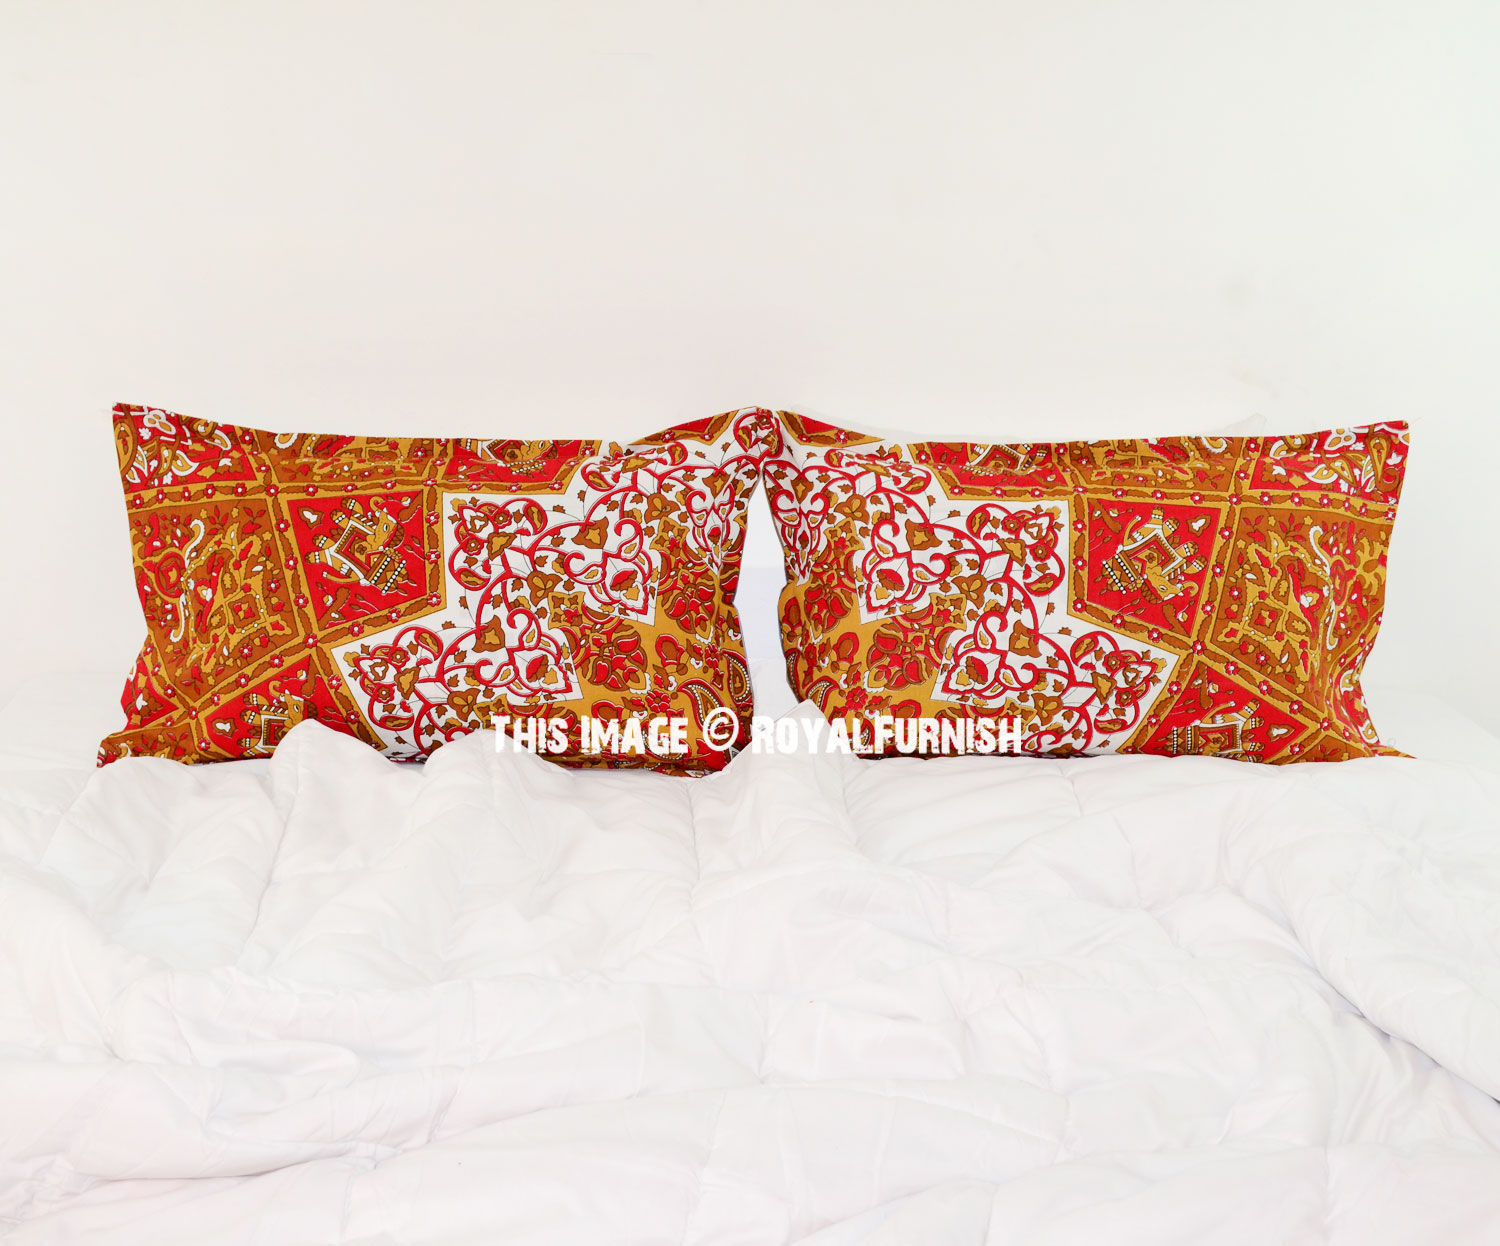 Red Yellow Multi 3D Boho Star Medallion Bed Pillow Covers Set of Two - RoyalFurnish.com